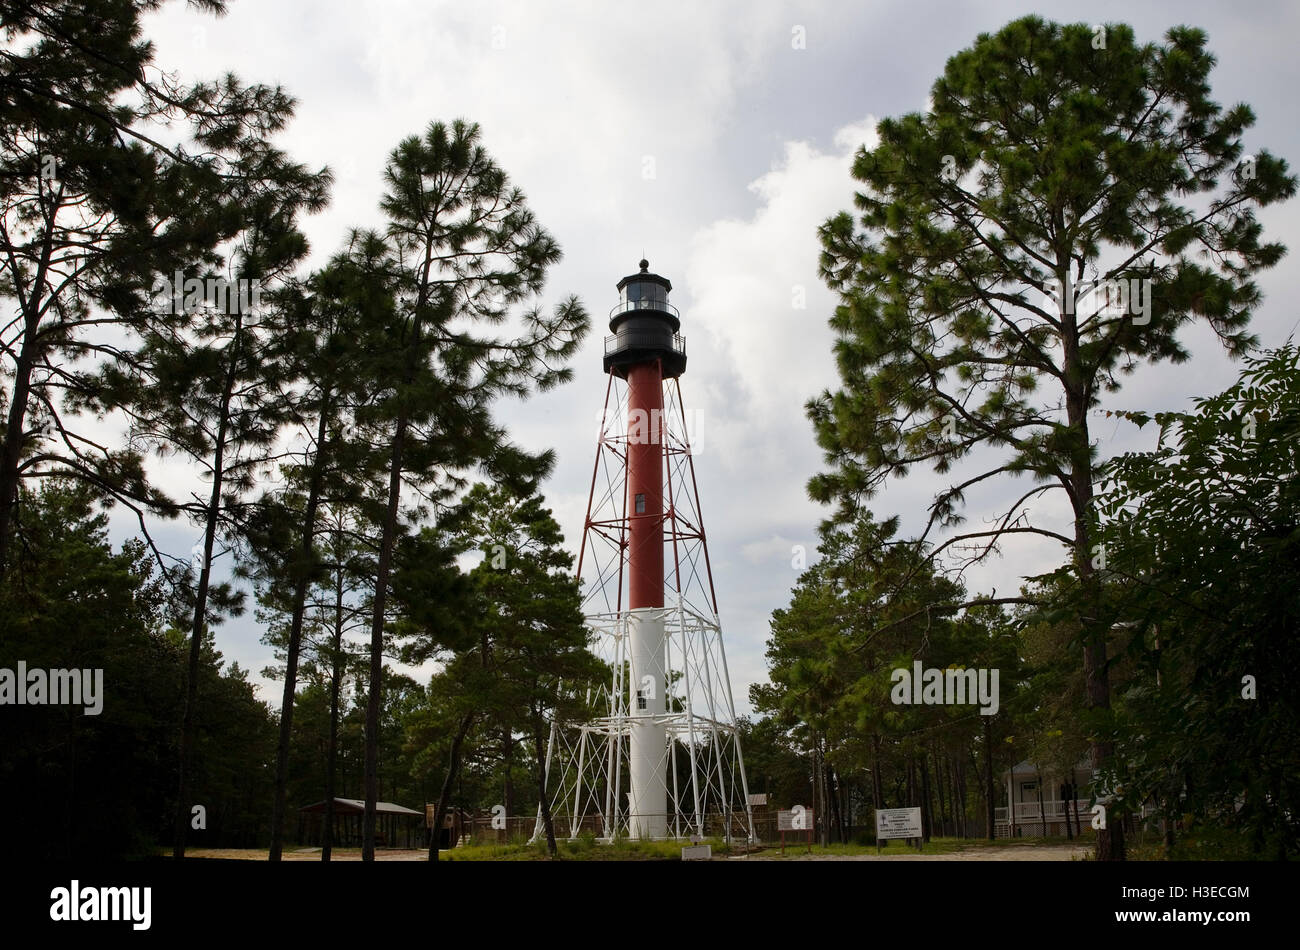 The red and white tower of Crooked River Lighthouse aka Carrabelle Light on Florida's Gulf Coast stands 100' - Stock Image